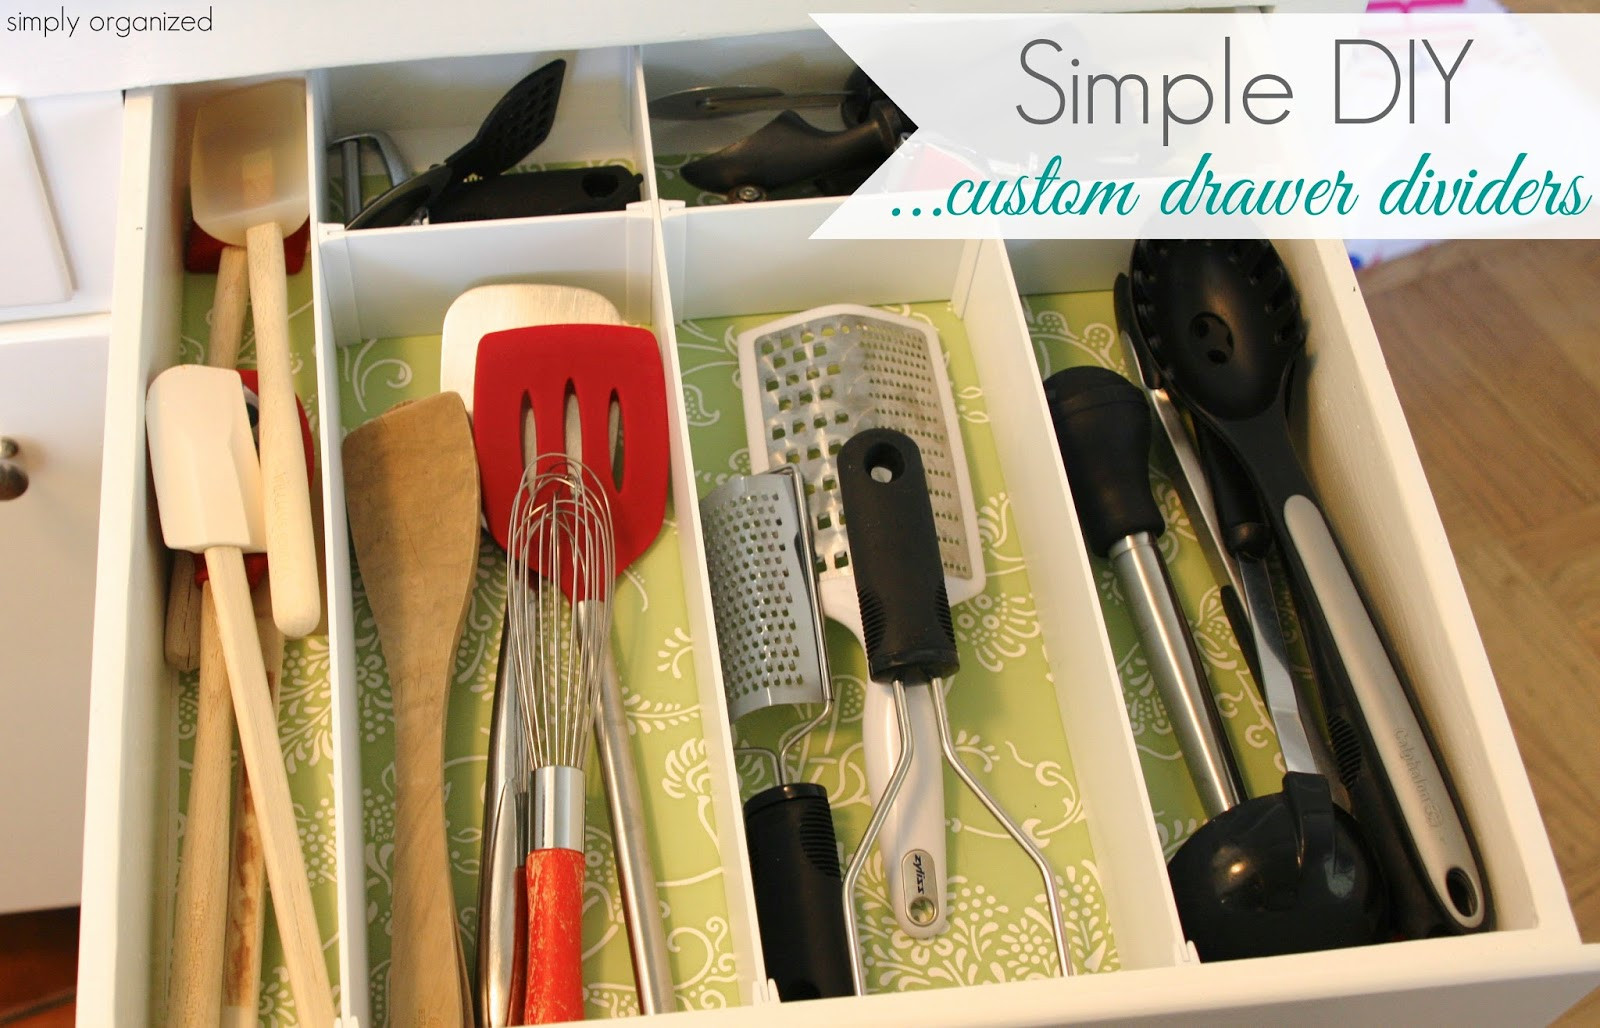 Best ideas about DIY Kitchen Drawer Dividers . Save or Pin simply organized DIY Custom Drawer Dividers Now.